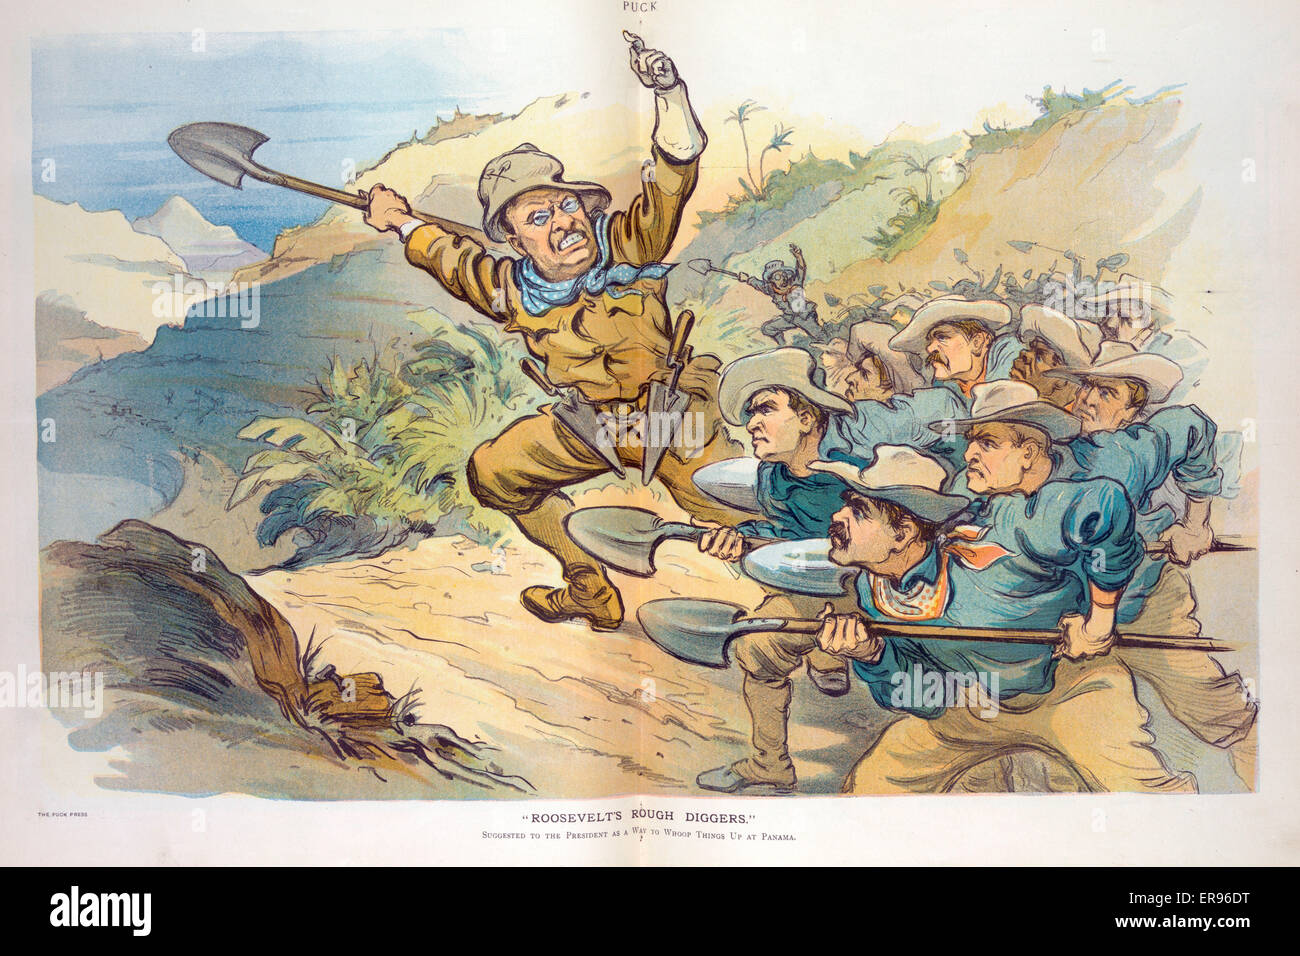 Roosevelt's rough diggers. Illustration shows Theodore Roosevelt, dressed as a Rough Rider, leading a group - Stock Image